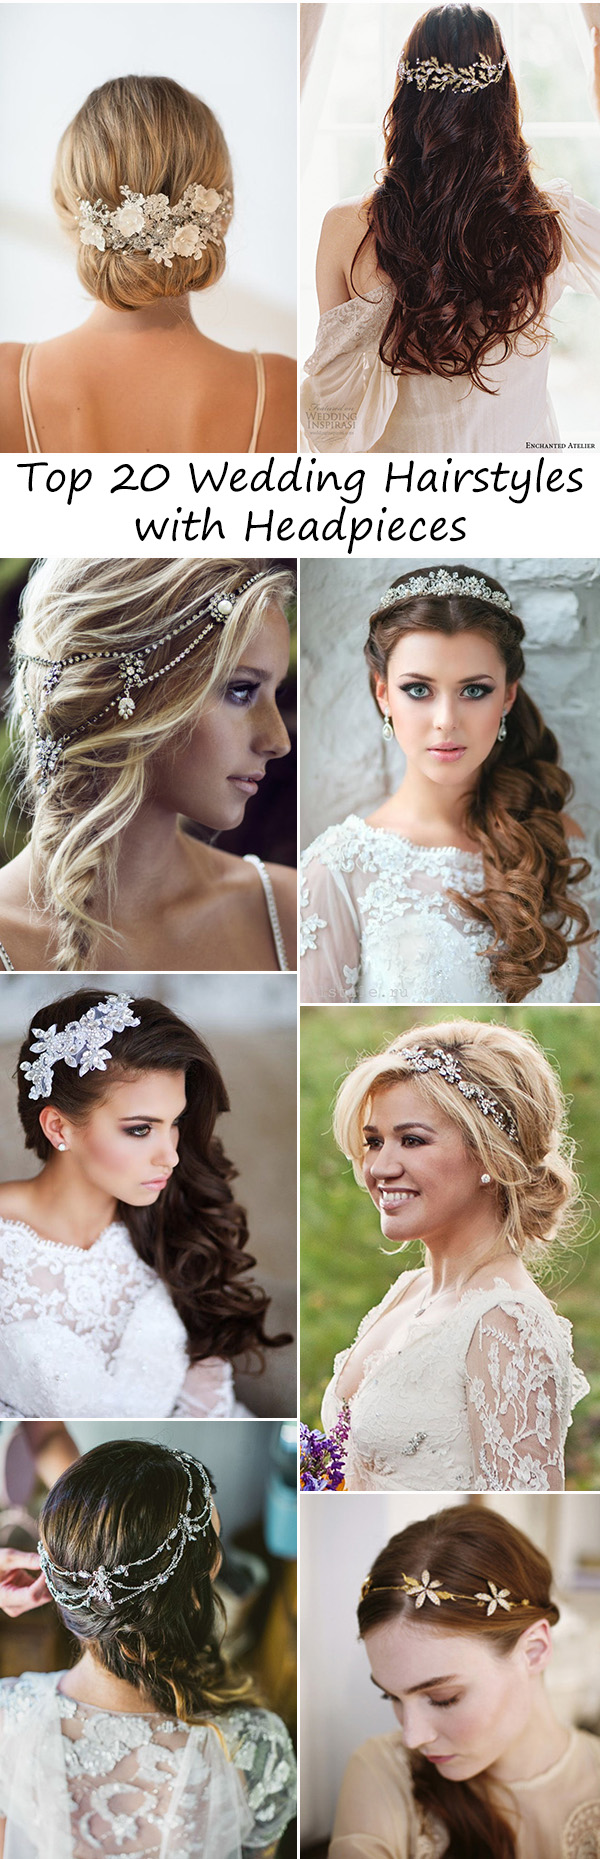 wedding accessories-20 charming bridal headpieces to match